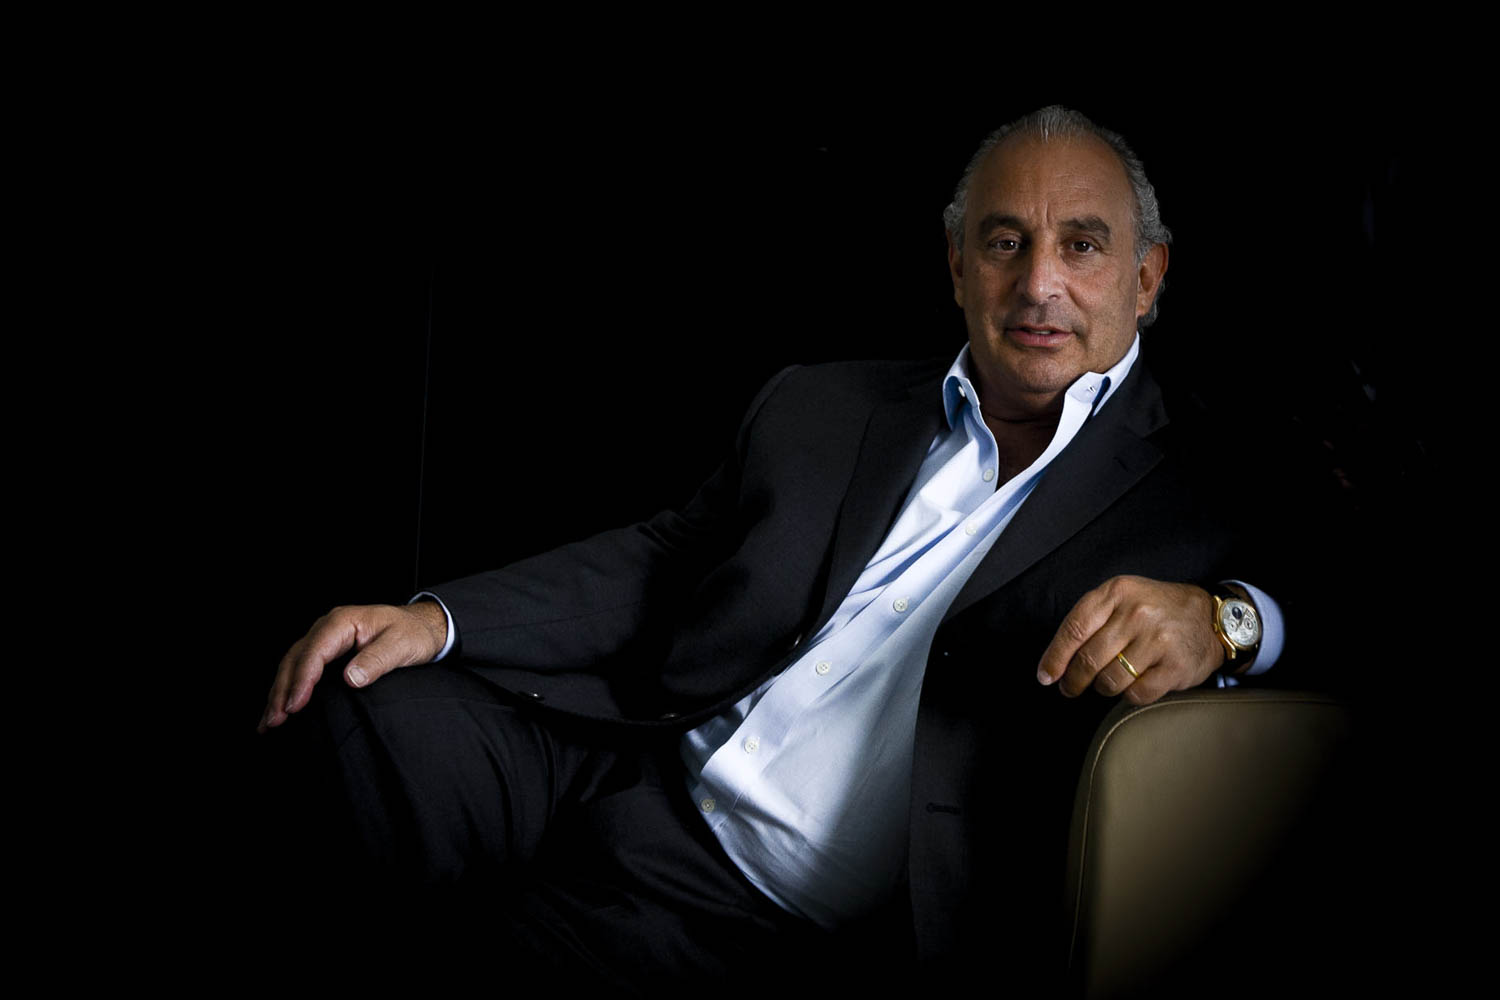 Sir Philip Green, businessman